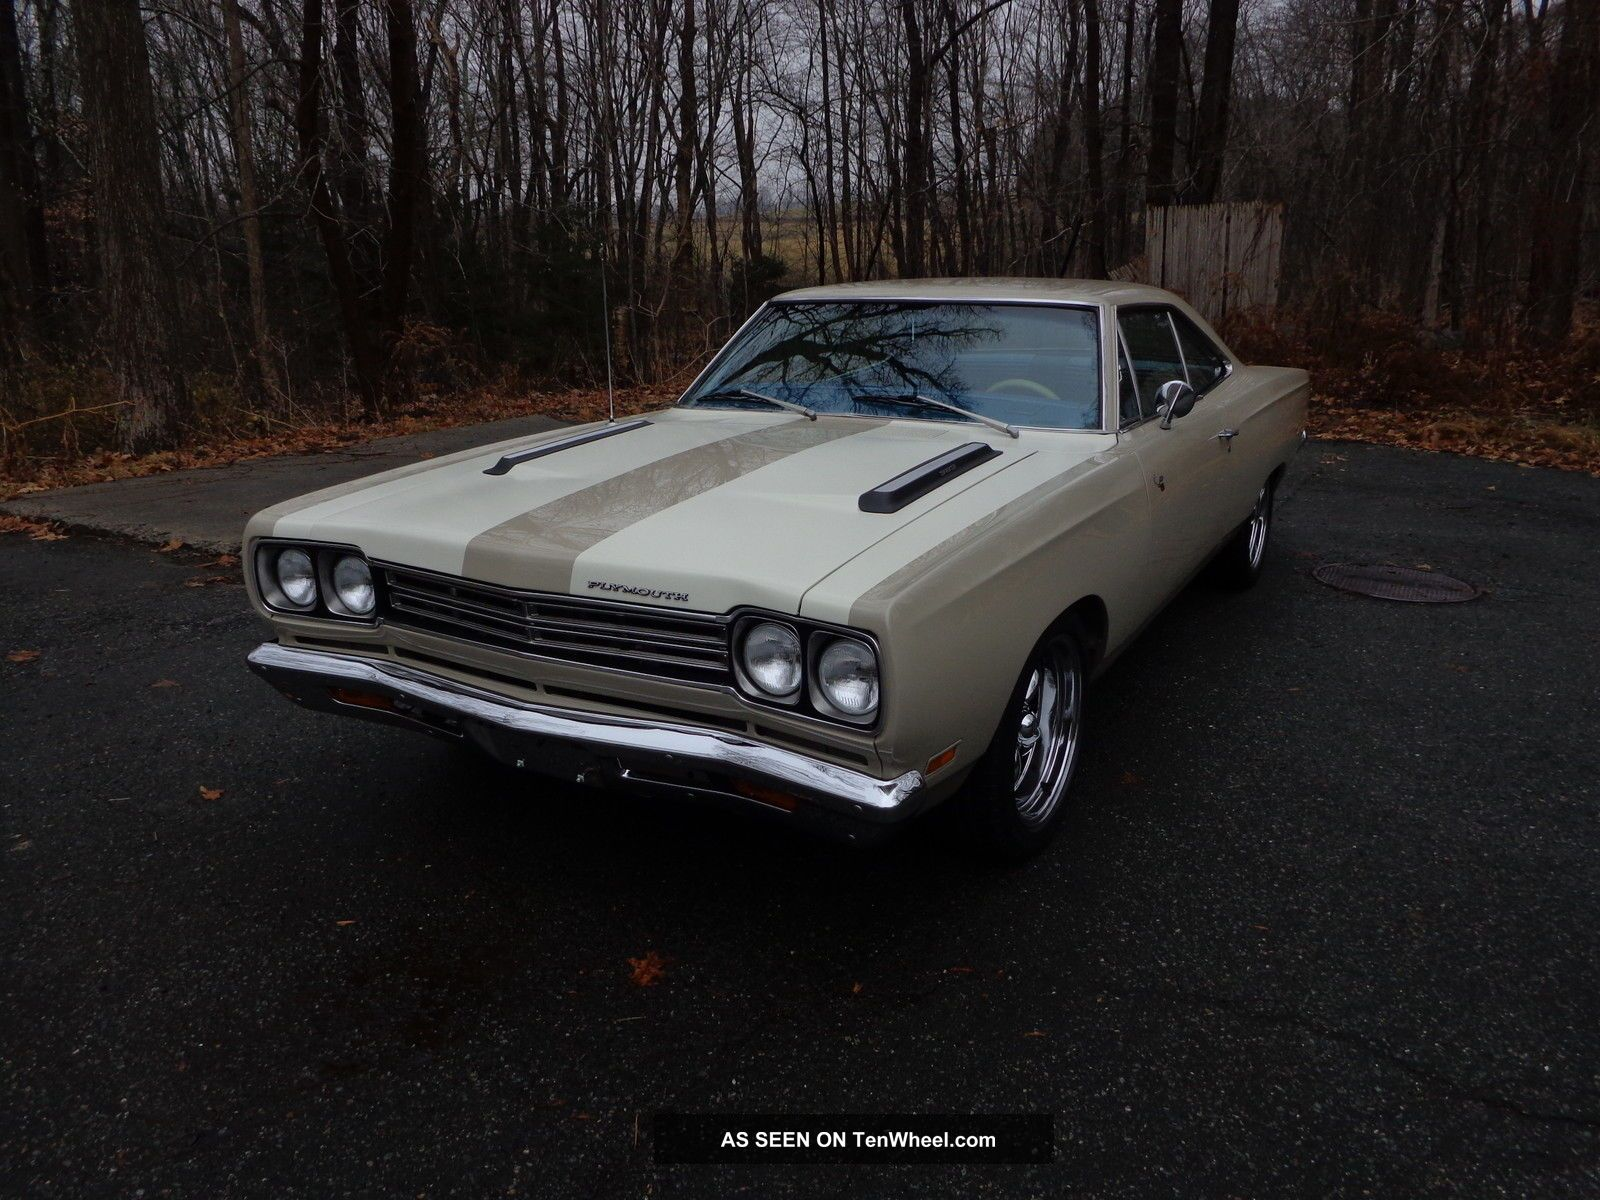 1969 Plymouth Road Runner - A Real Muscle Car Road Runner photo